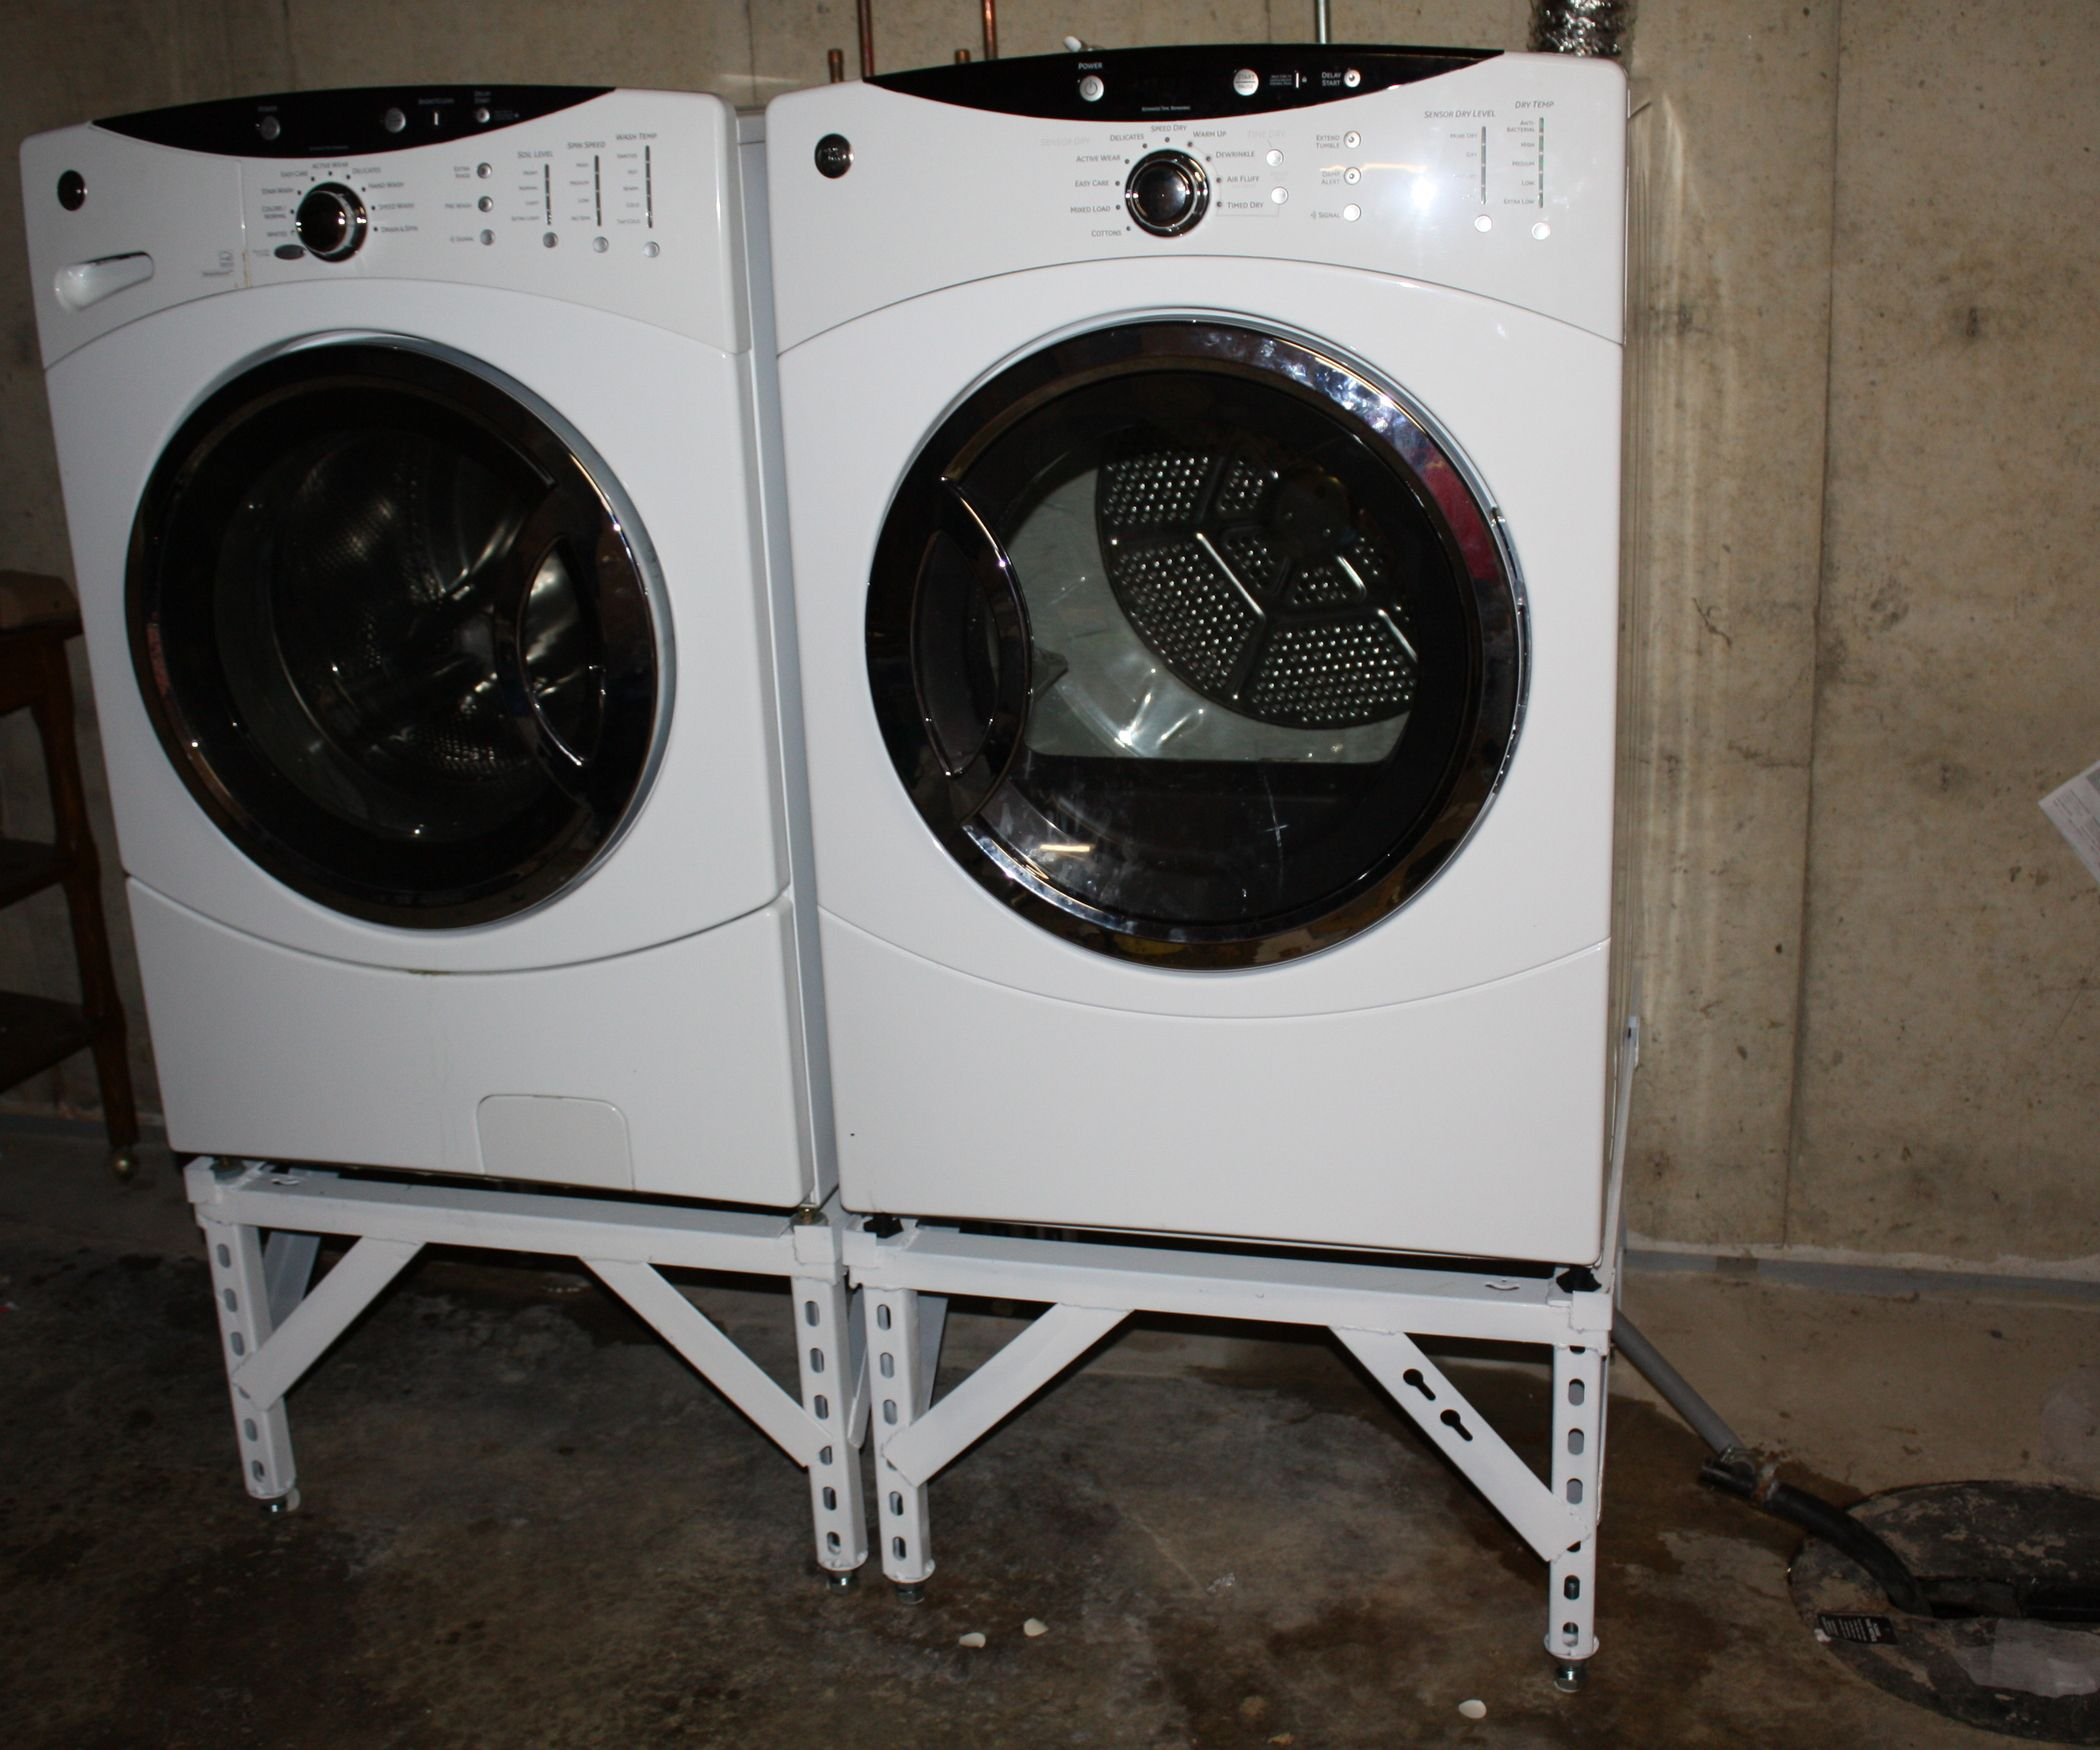 Steel Washer Dryer Stand With Adjustable Legs Washer And Dryer